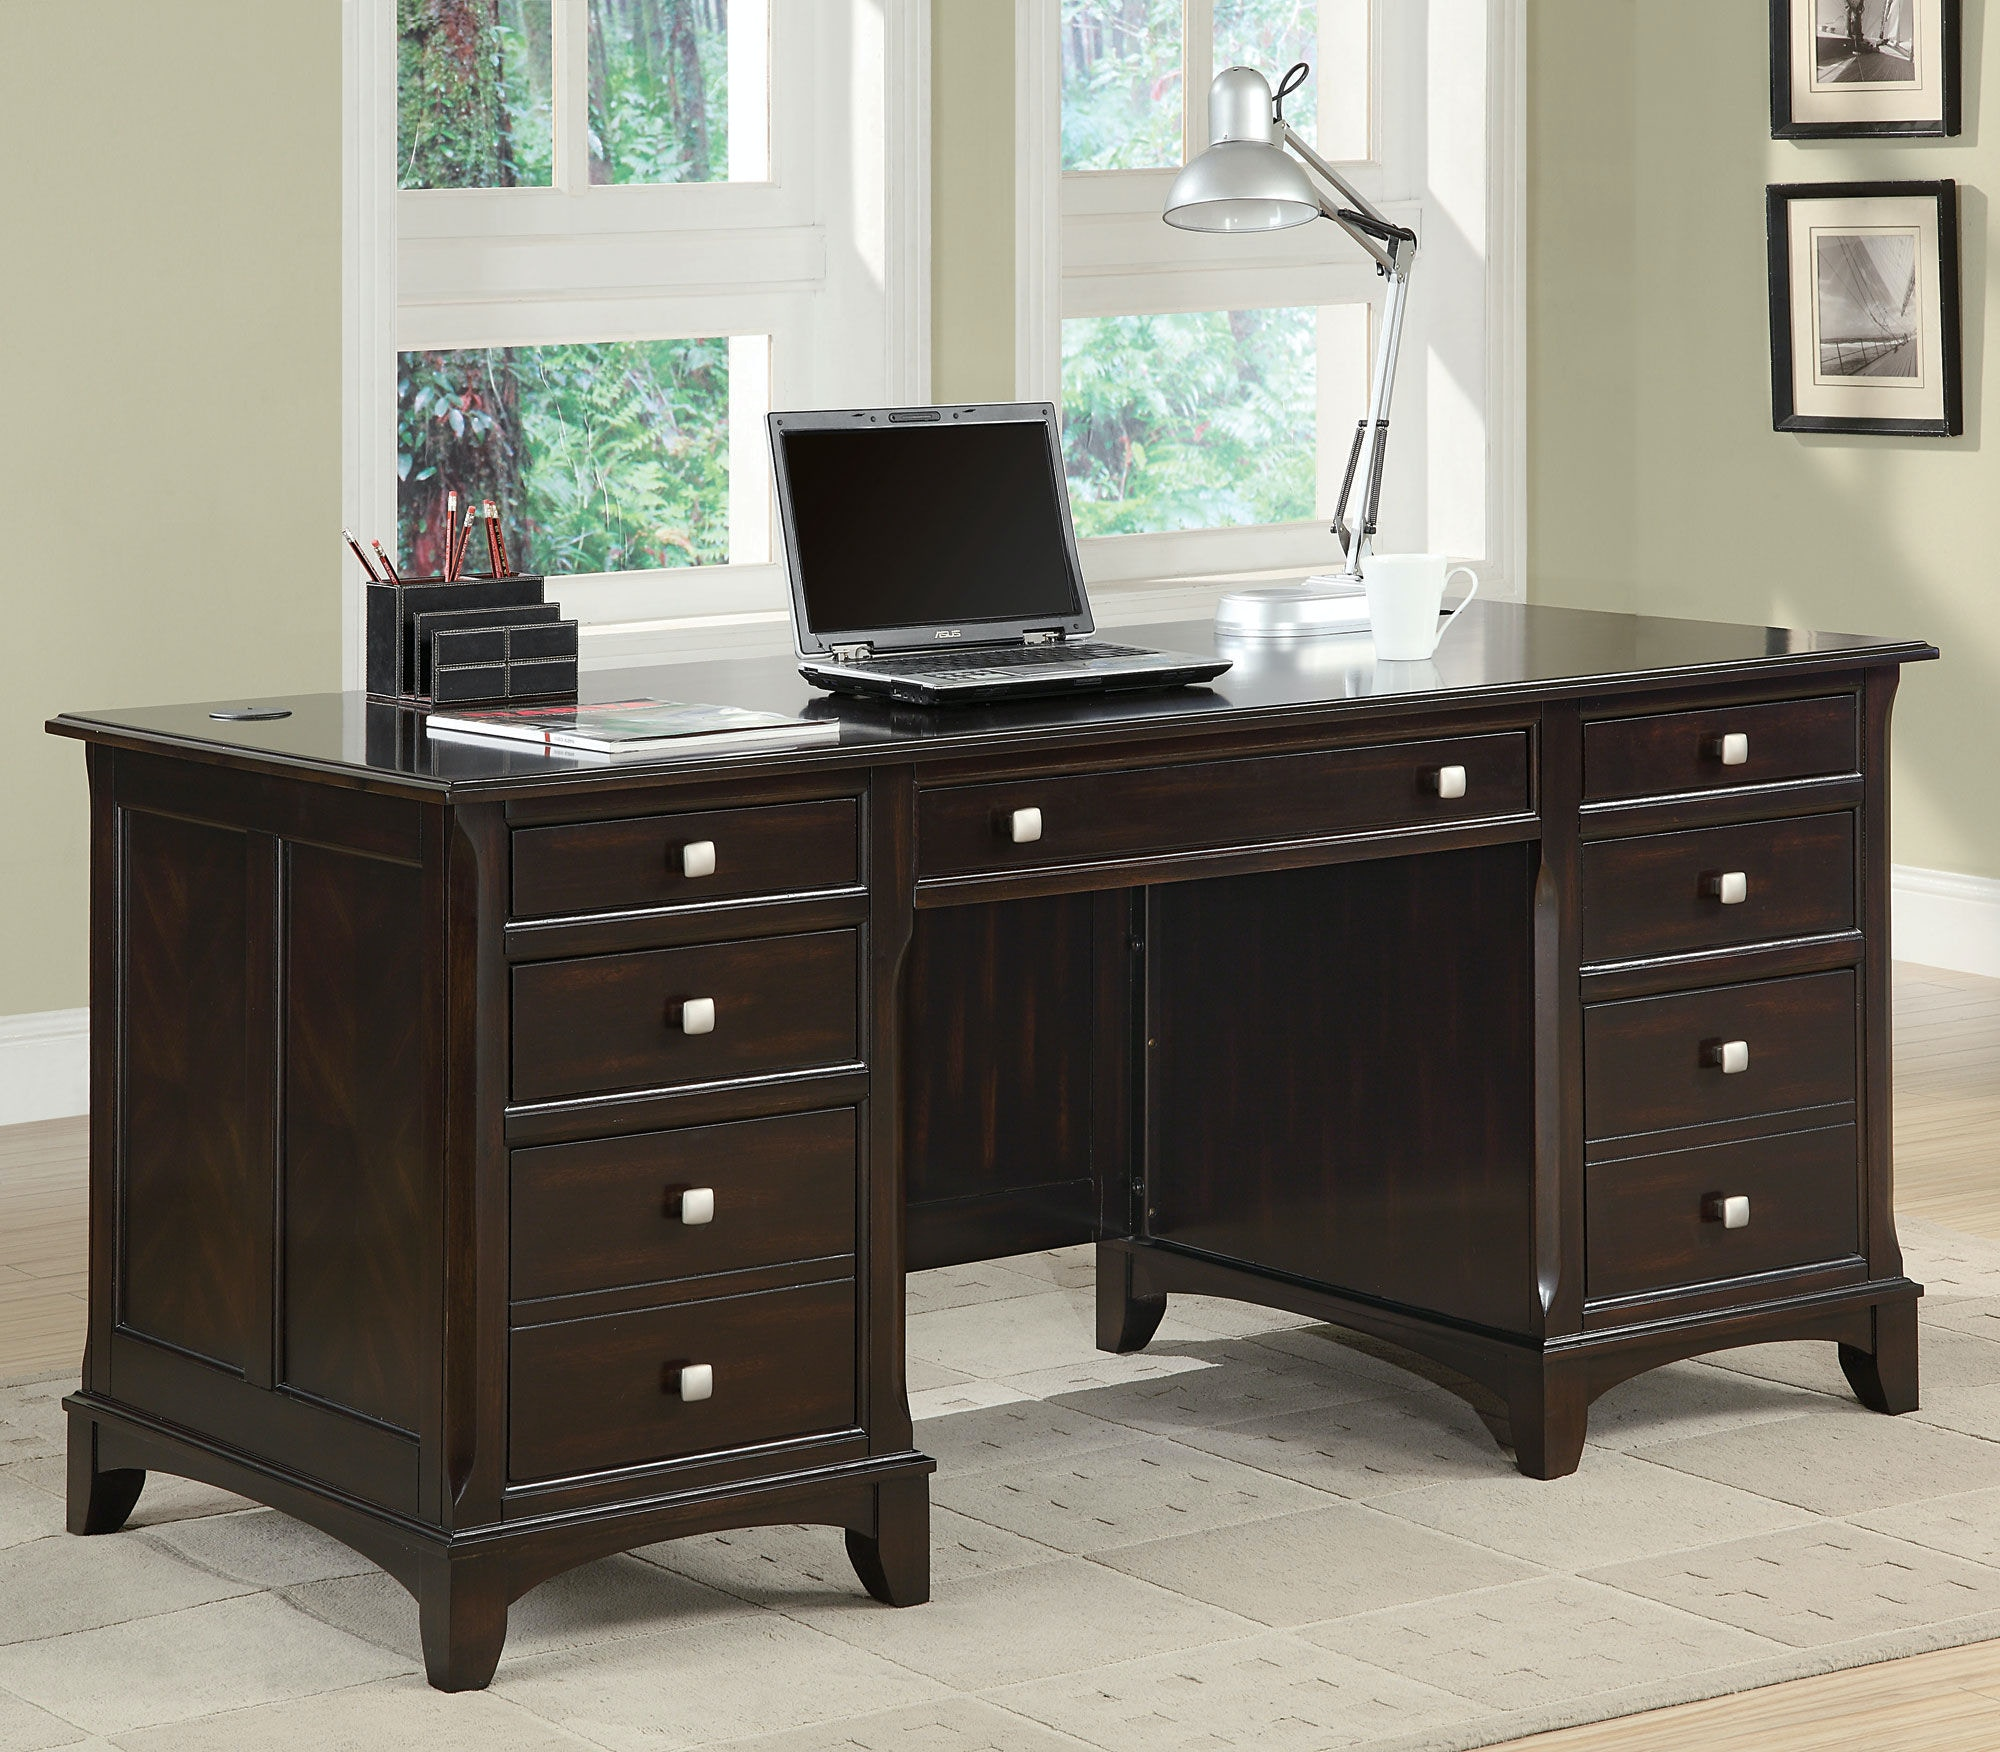 Coaster Home Office Desk 801012   Simply Discount Furniture   Santa Clarita  And Valencia, CA